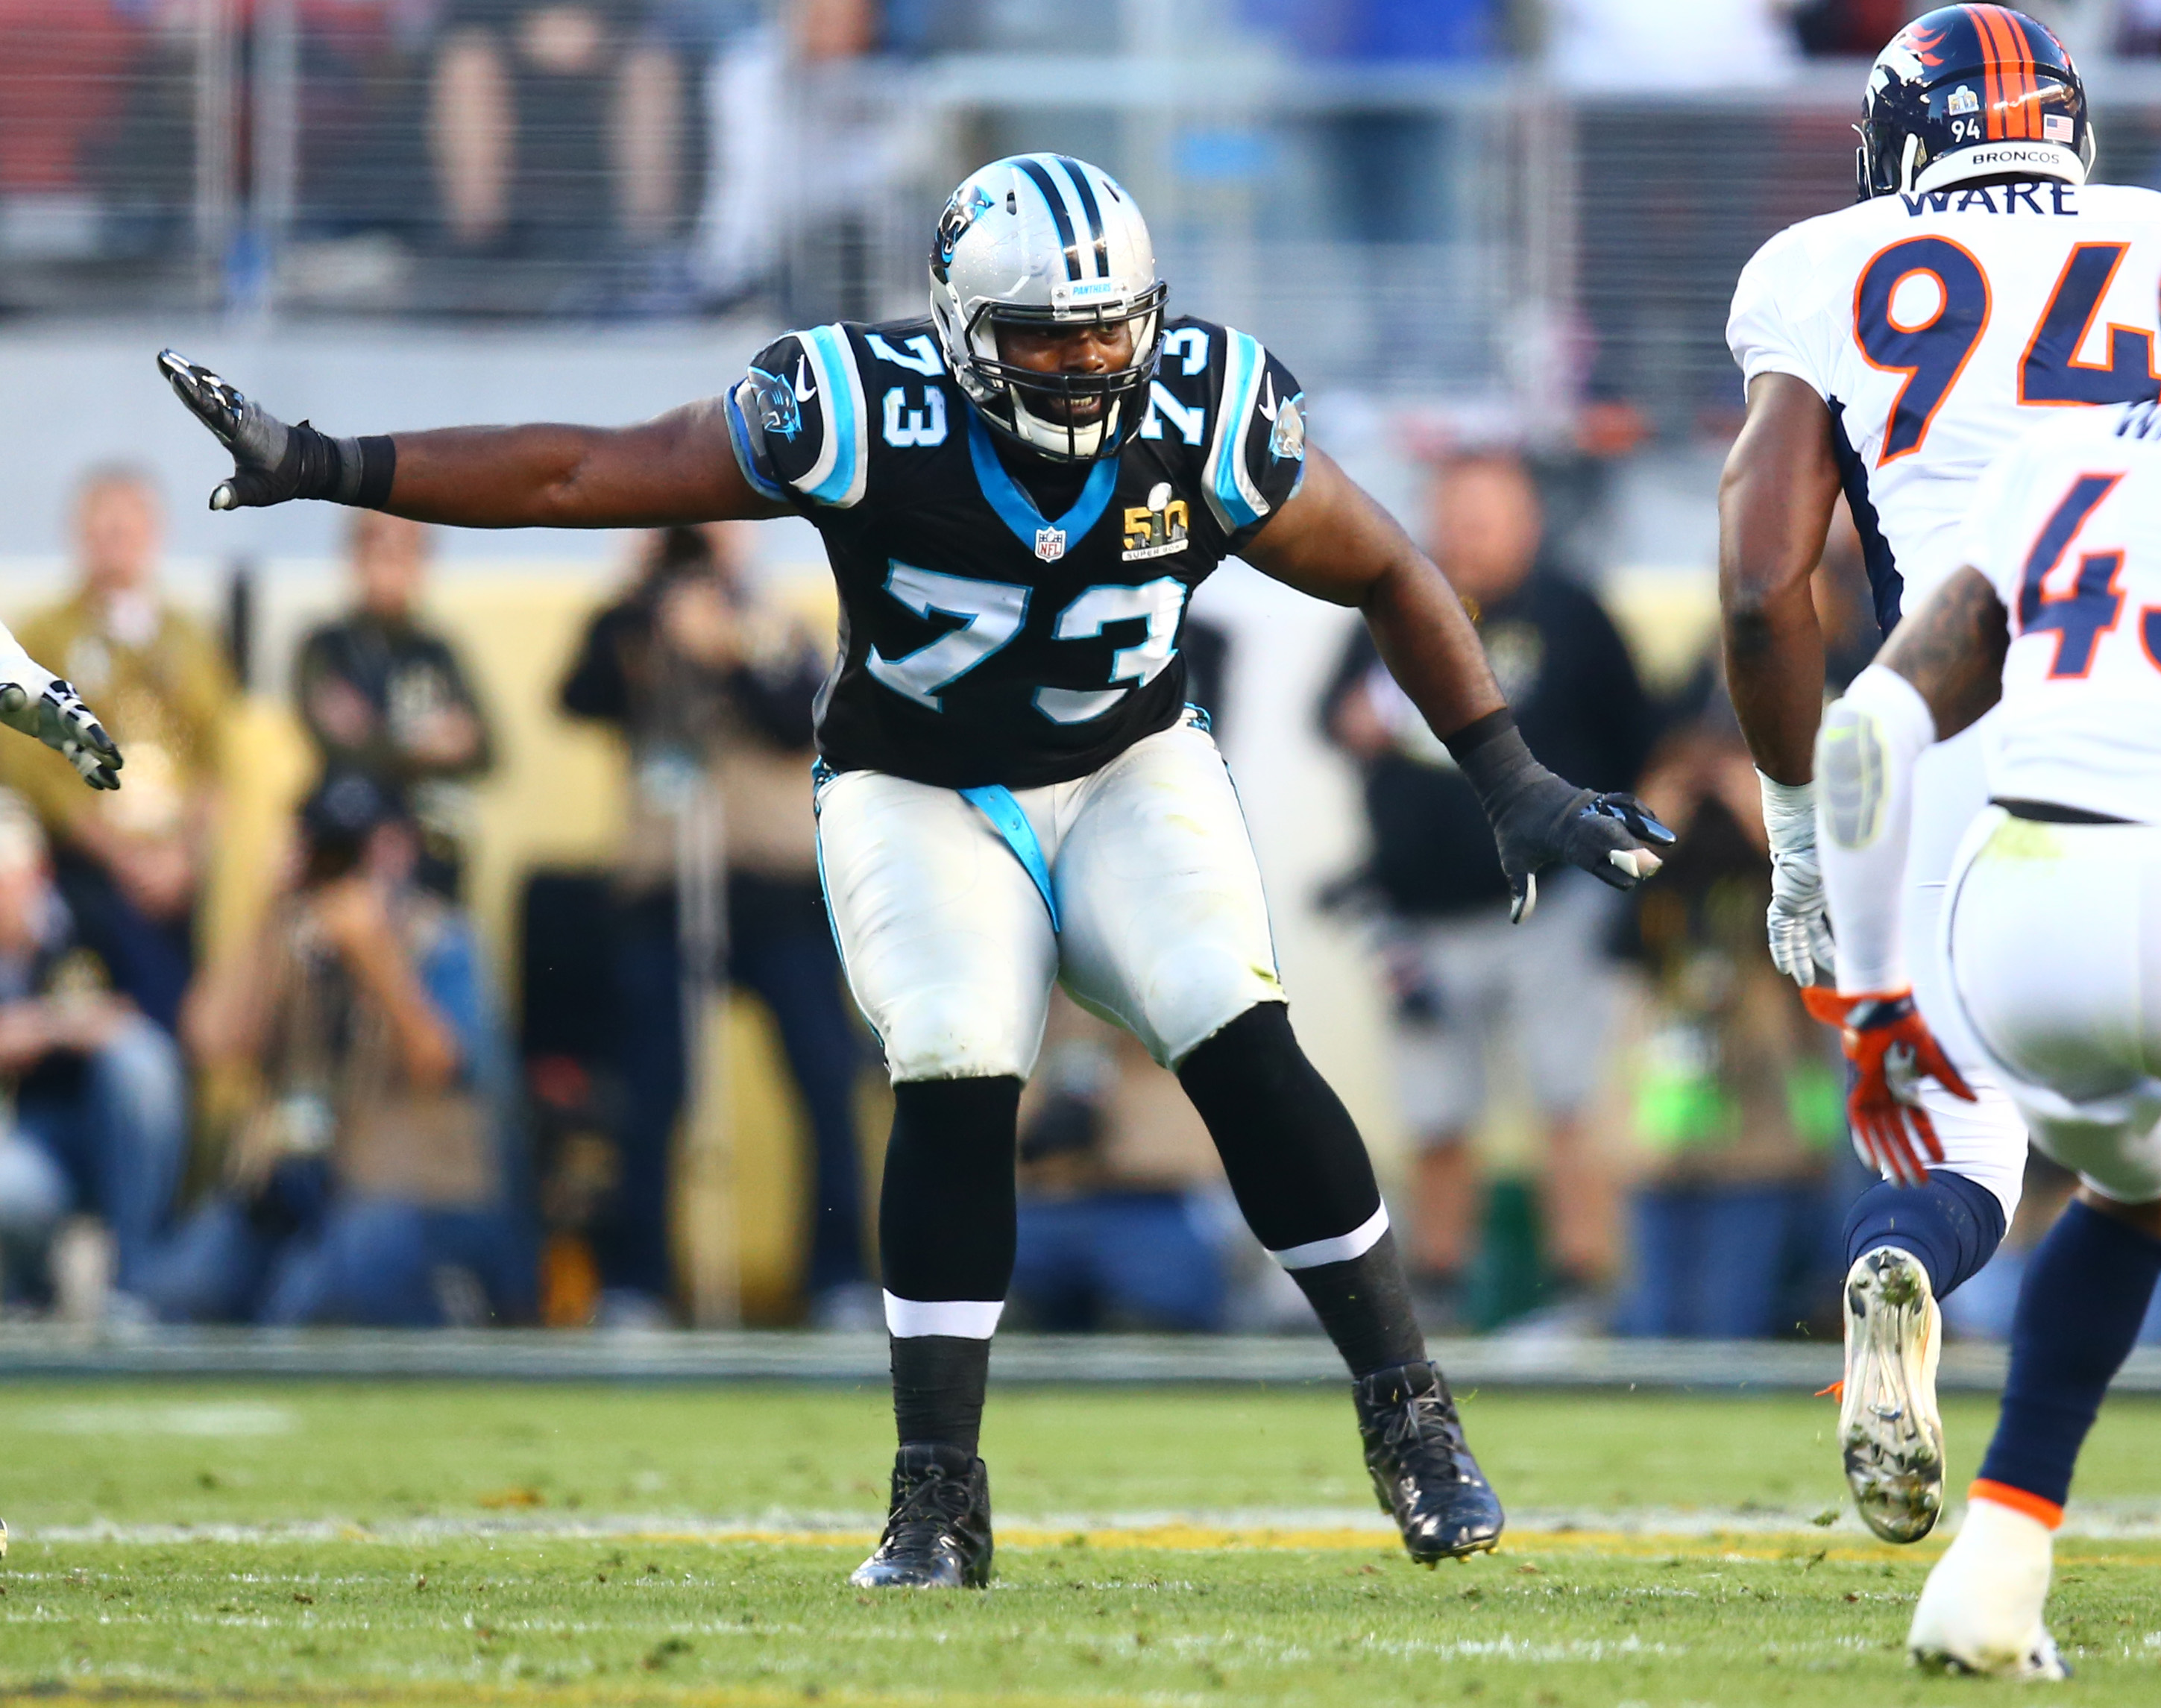 9122310-nfl-super-bowl-50-carolina-panthers-vs-denver-broncos